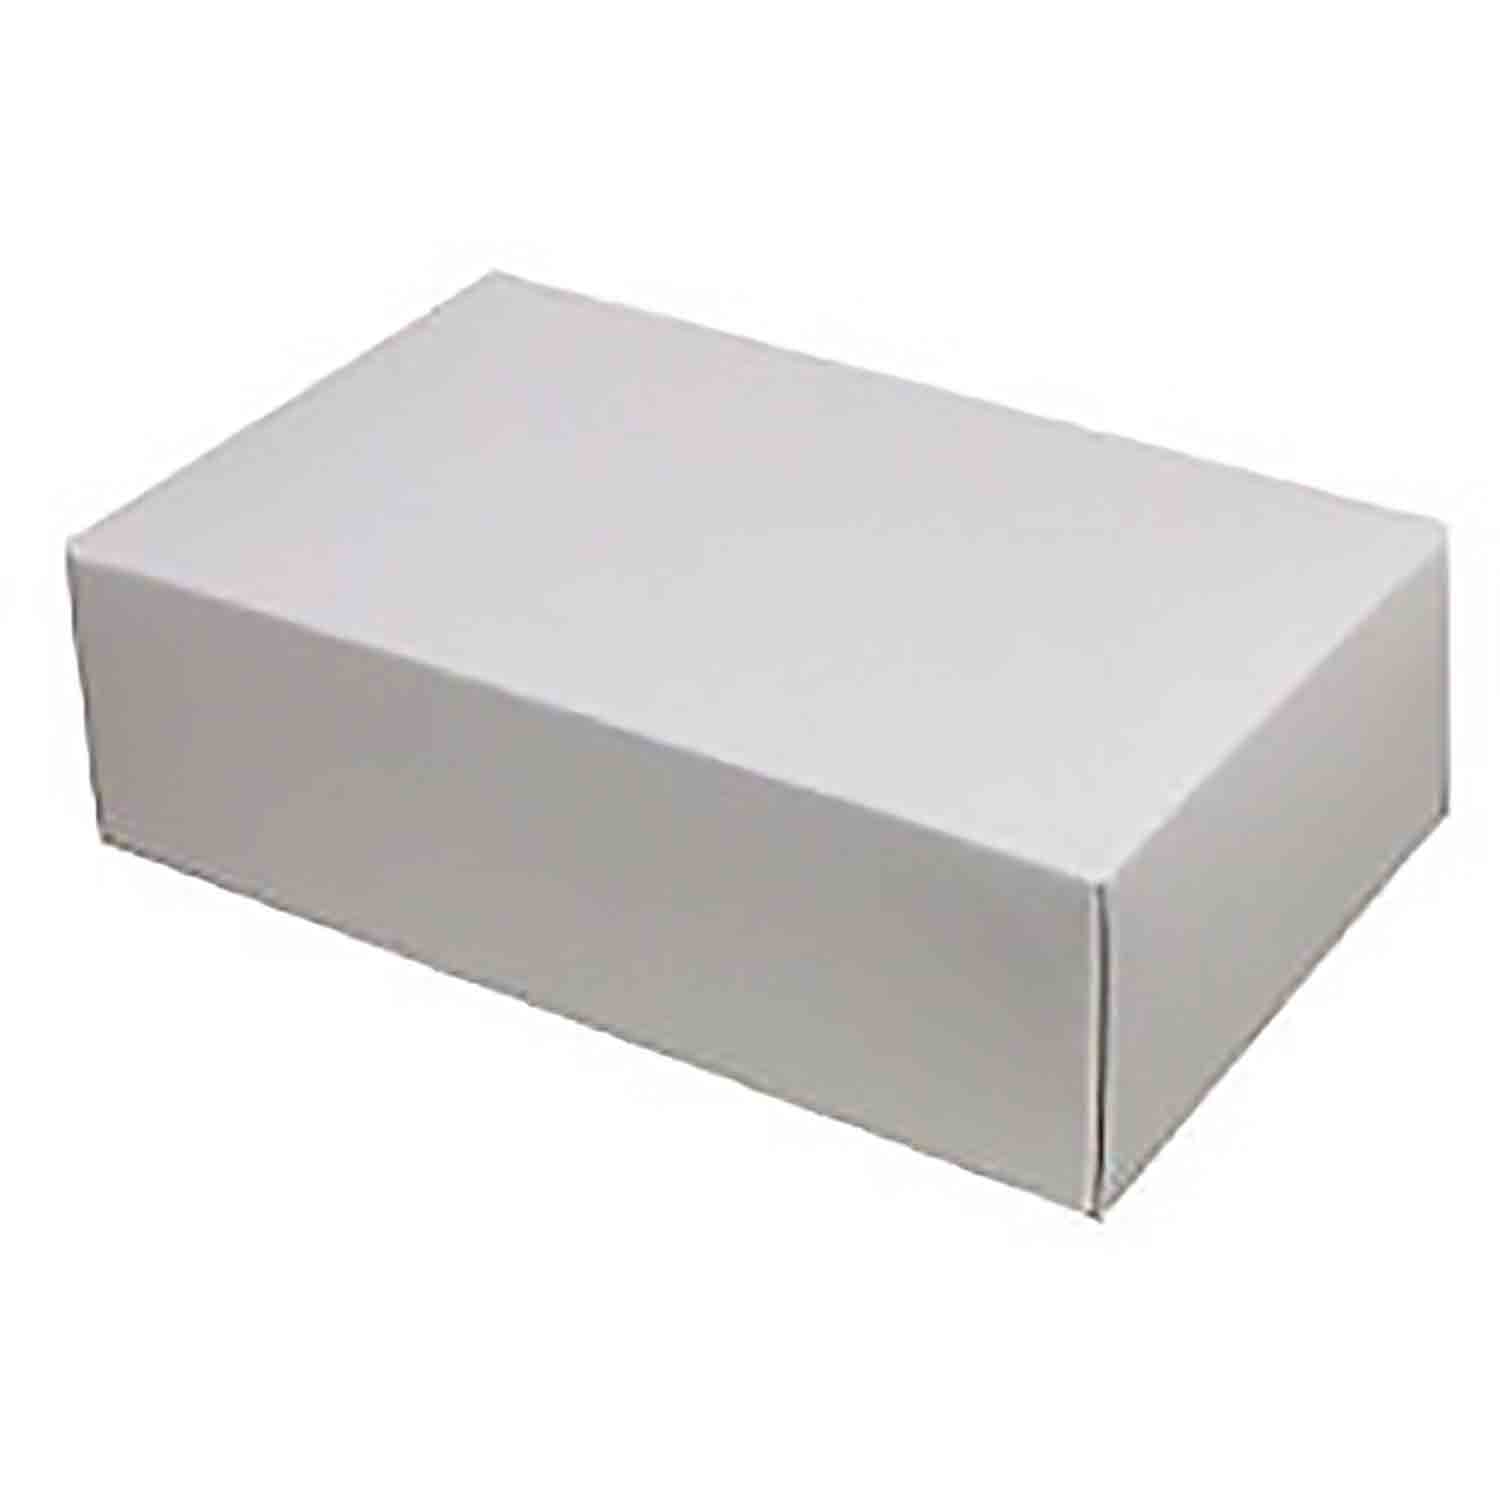 1 lb. White 2-Layer Candy Box